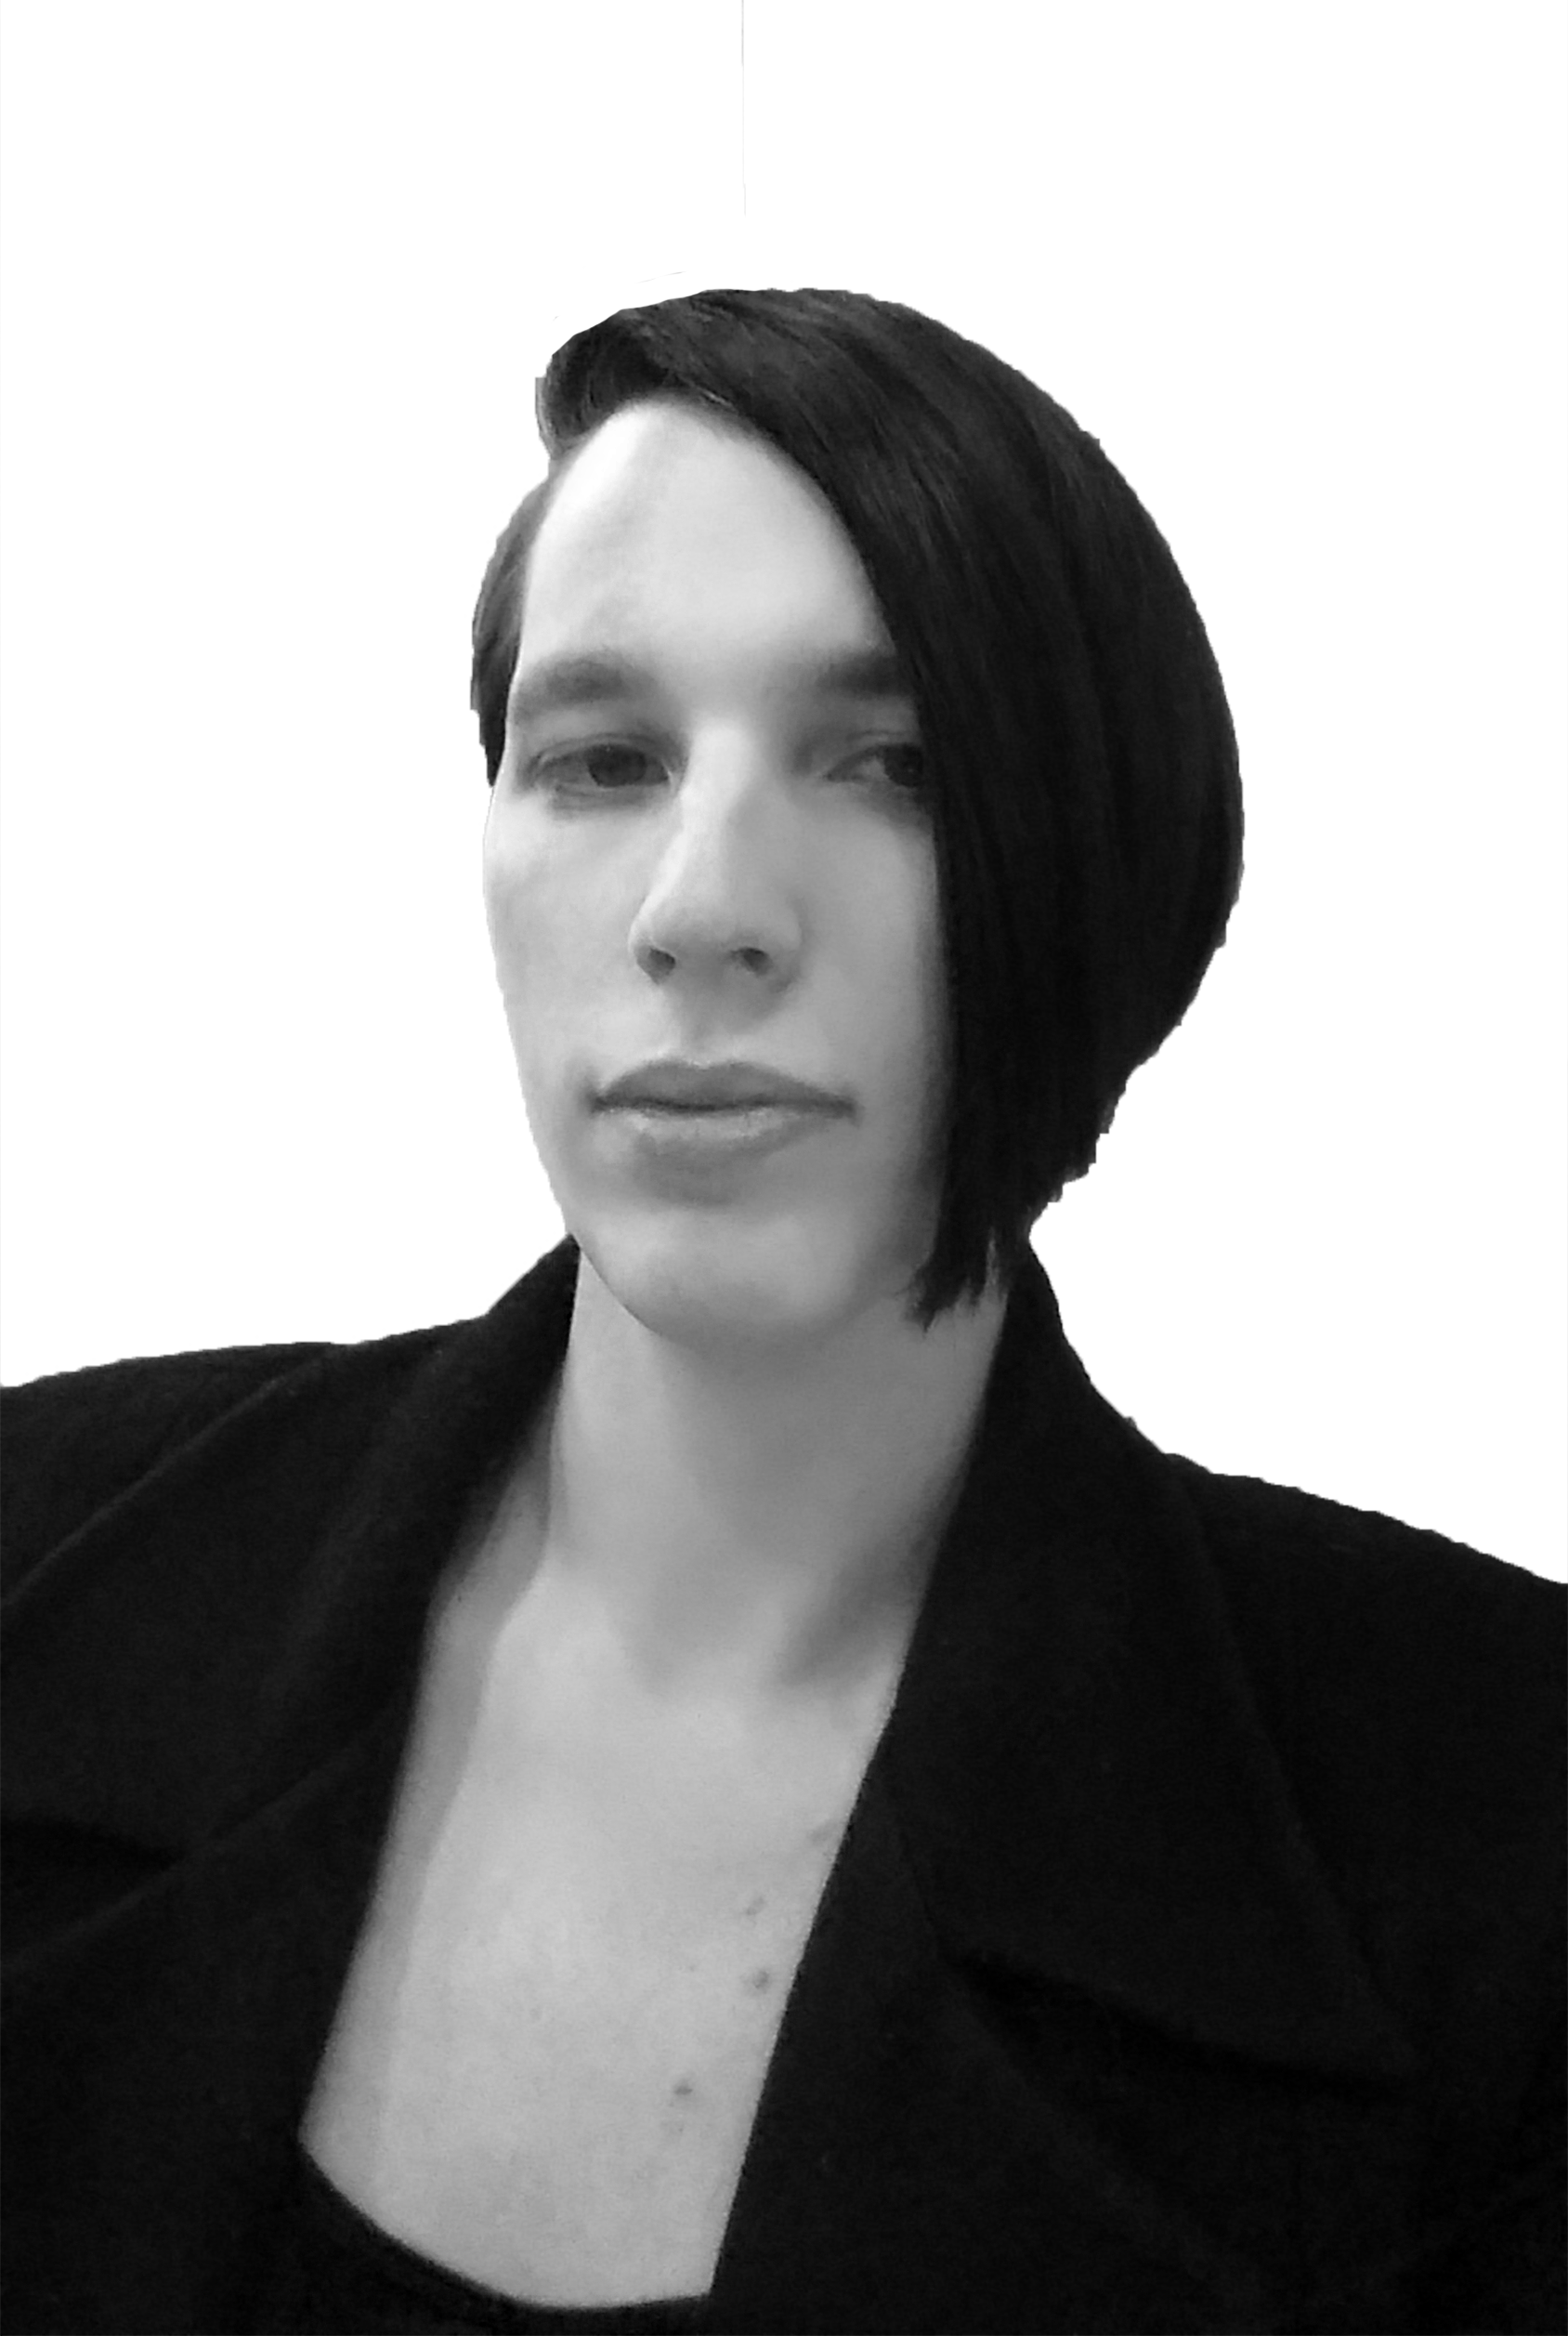 black and white photograph of our new executive editor, Vivian Veidt